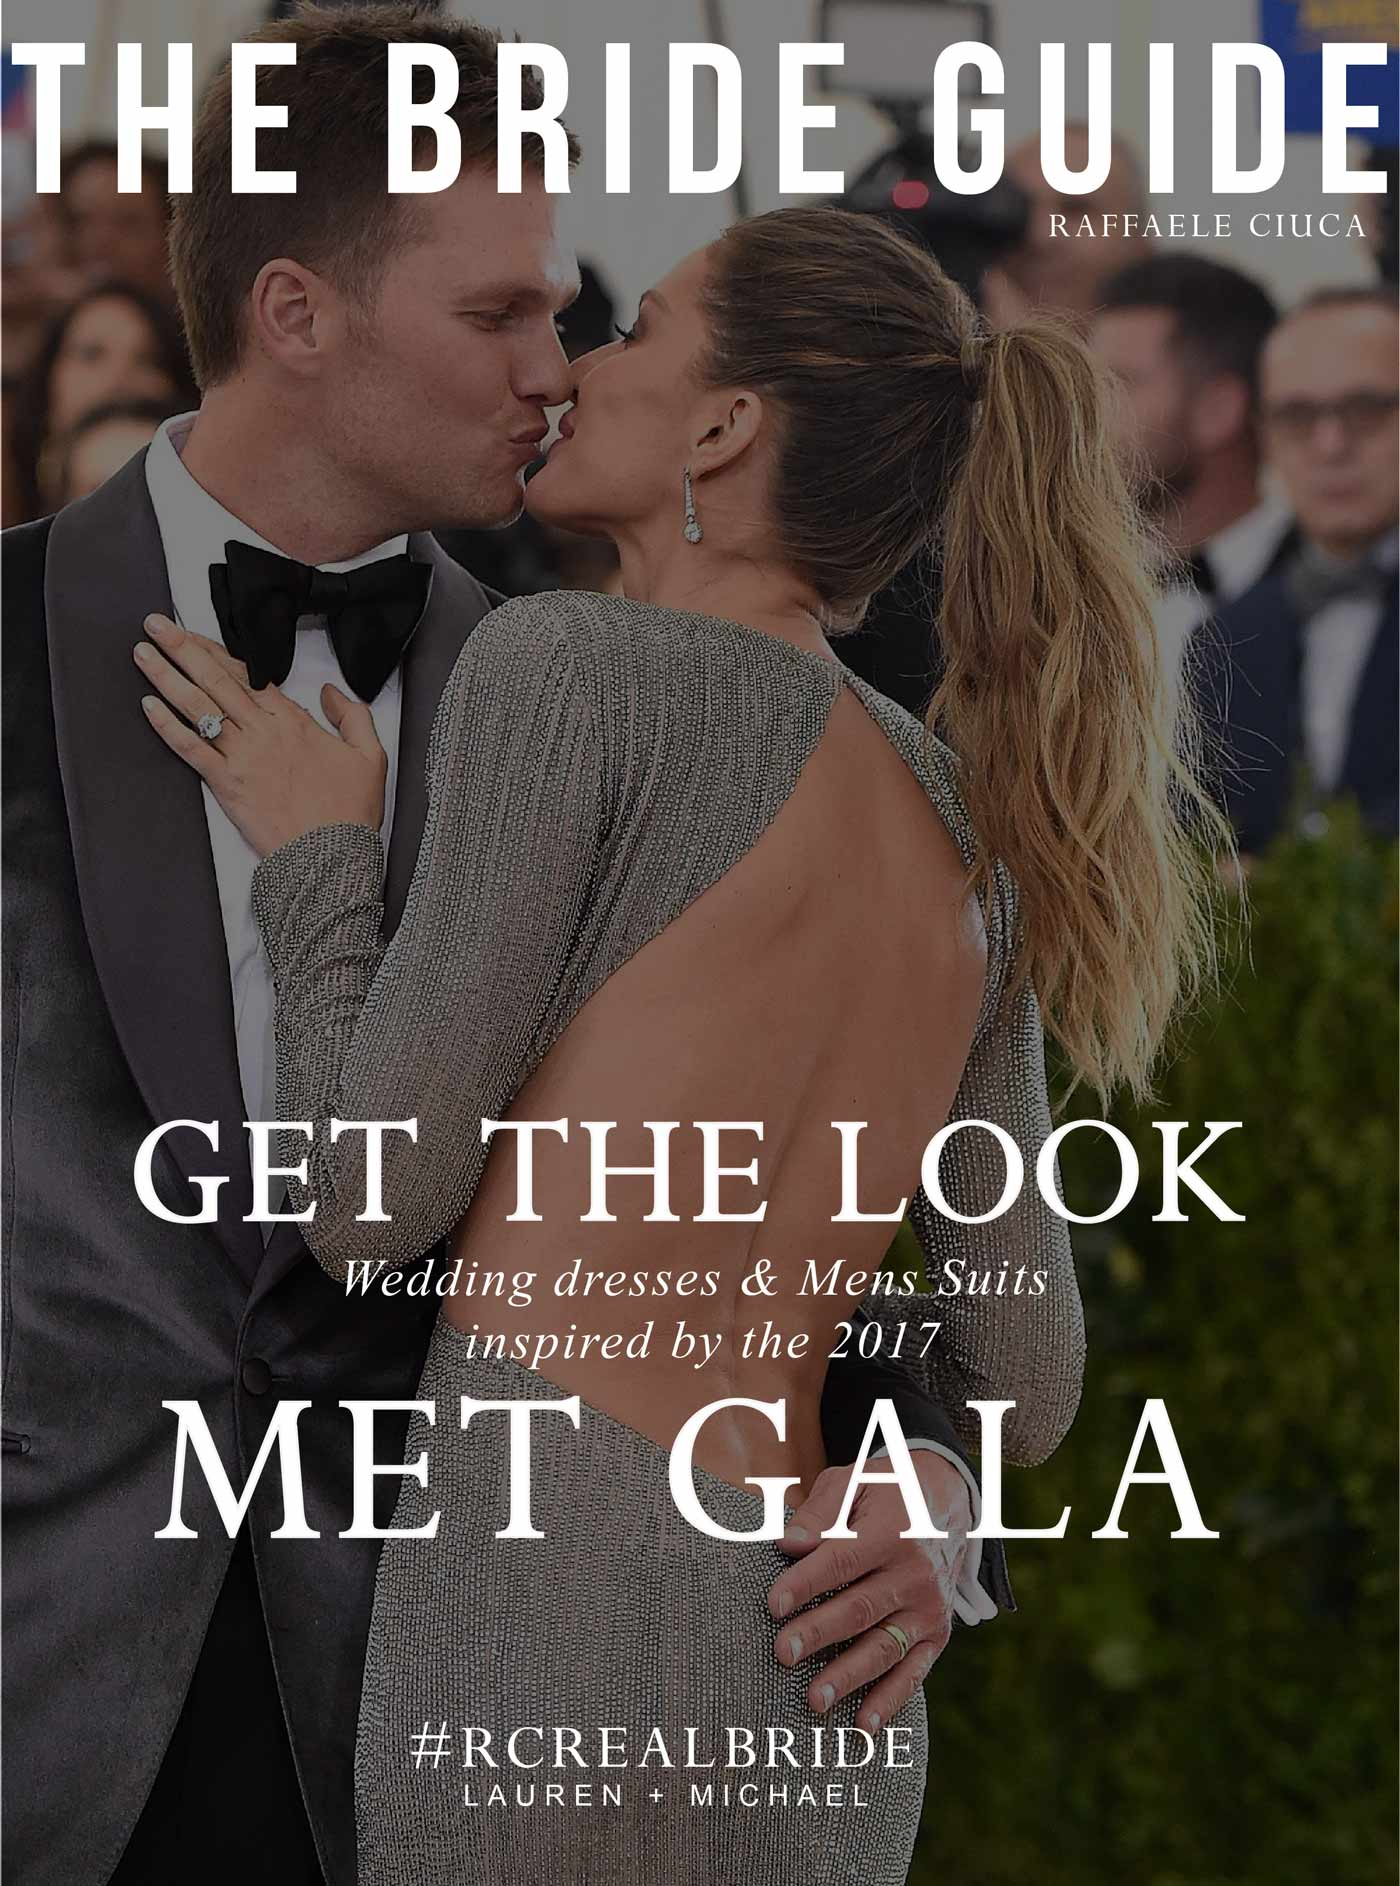 Wedding dresses and mens suits inspired by the Met Gala